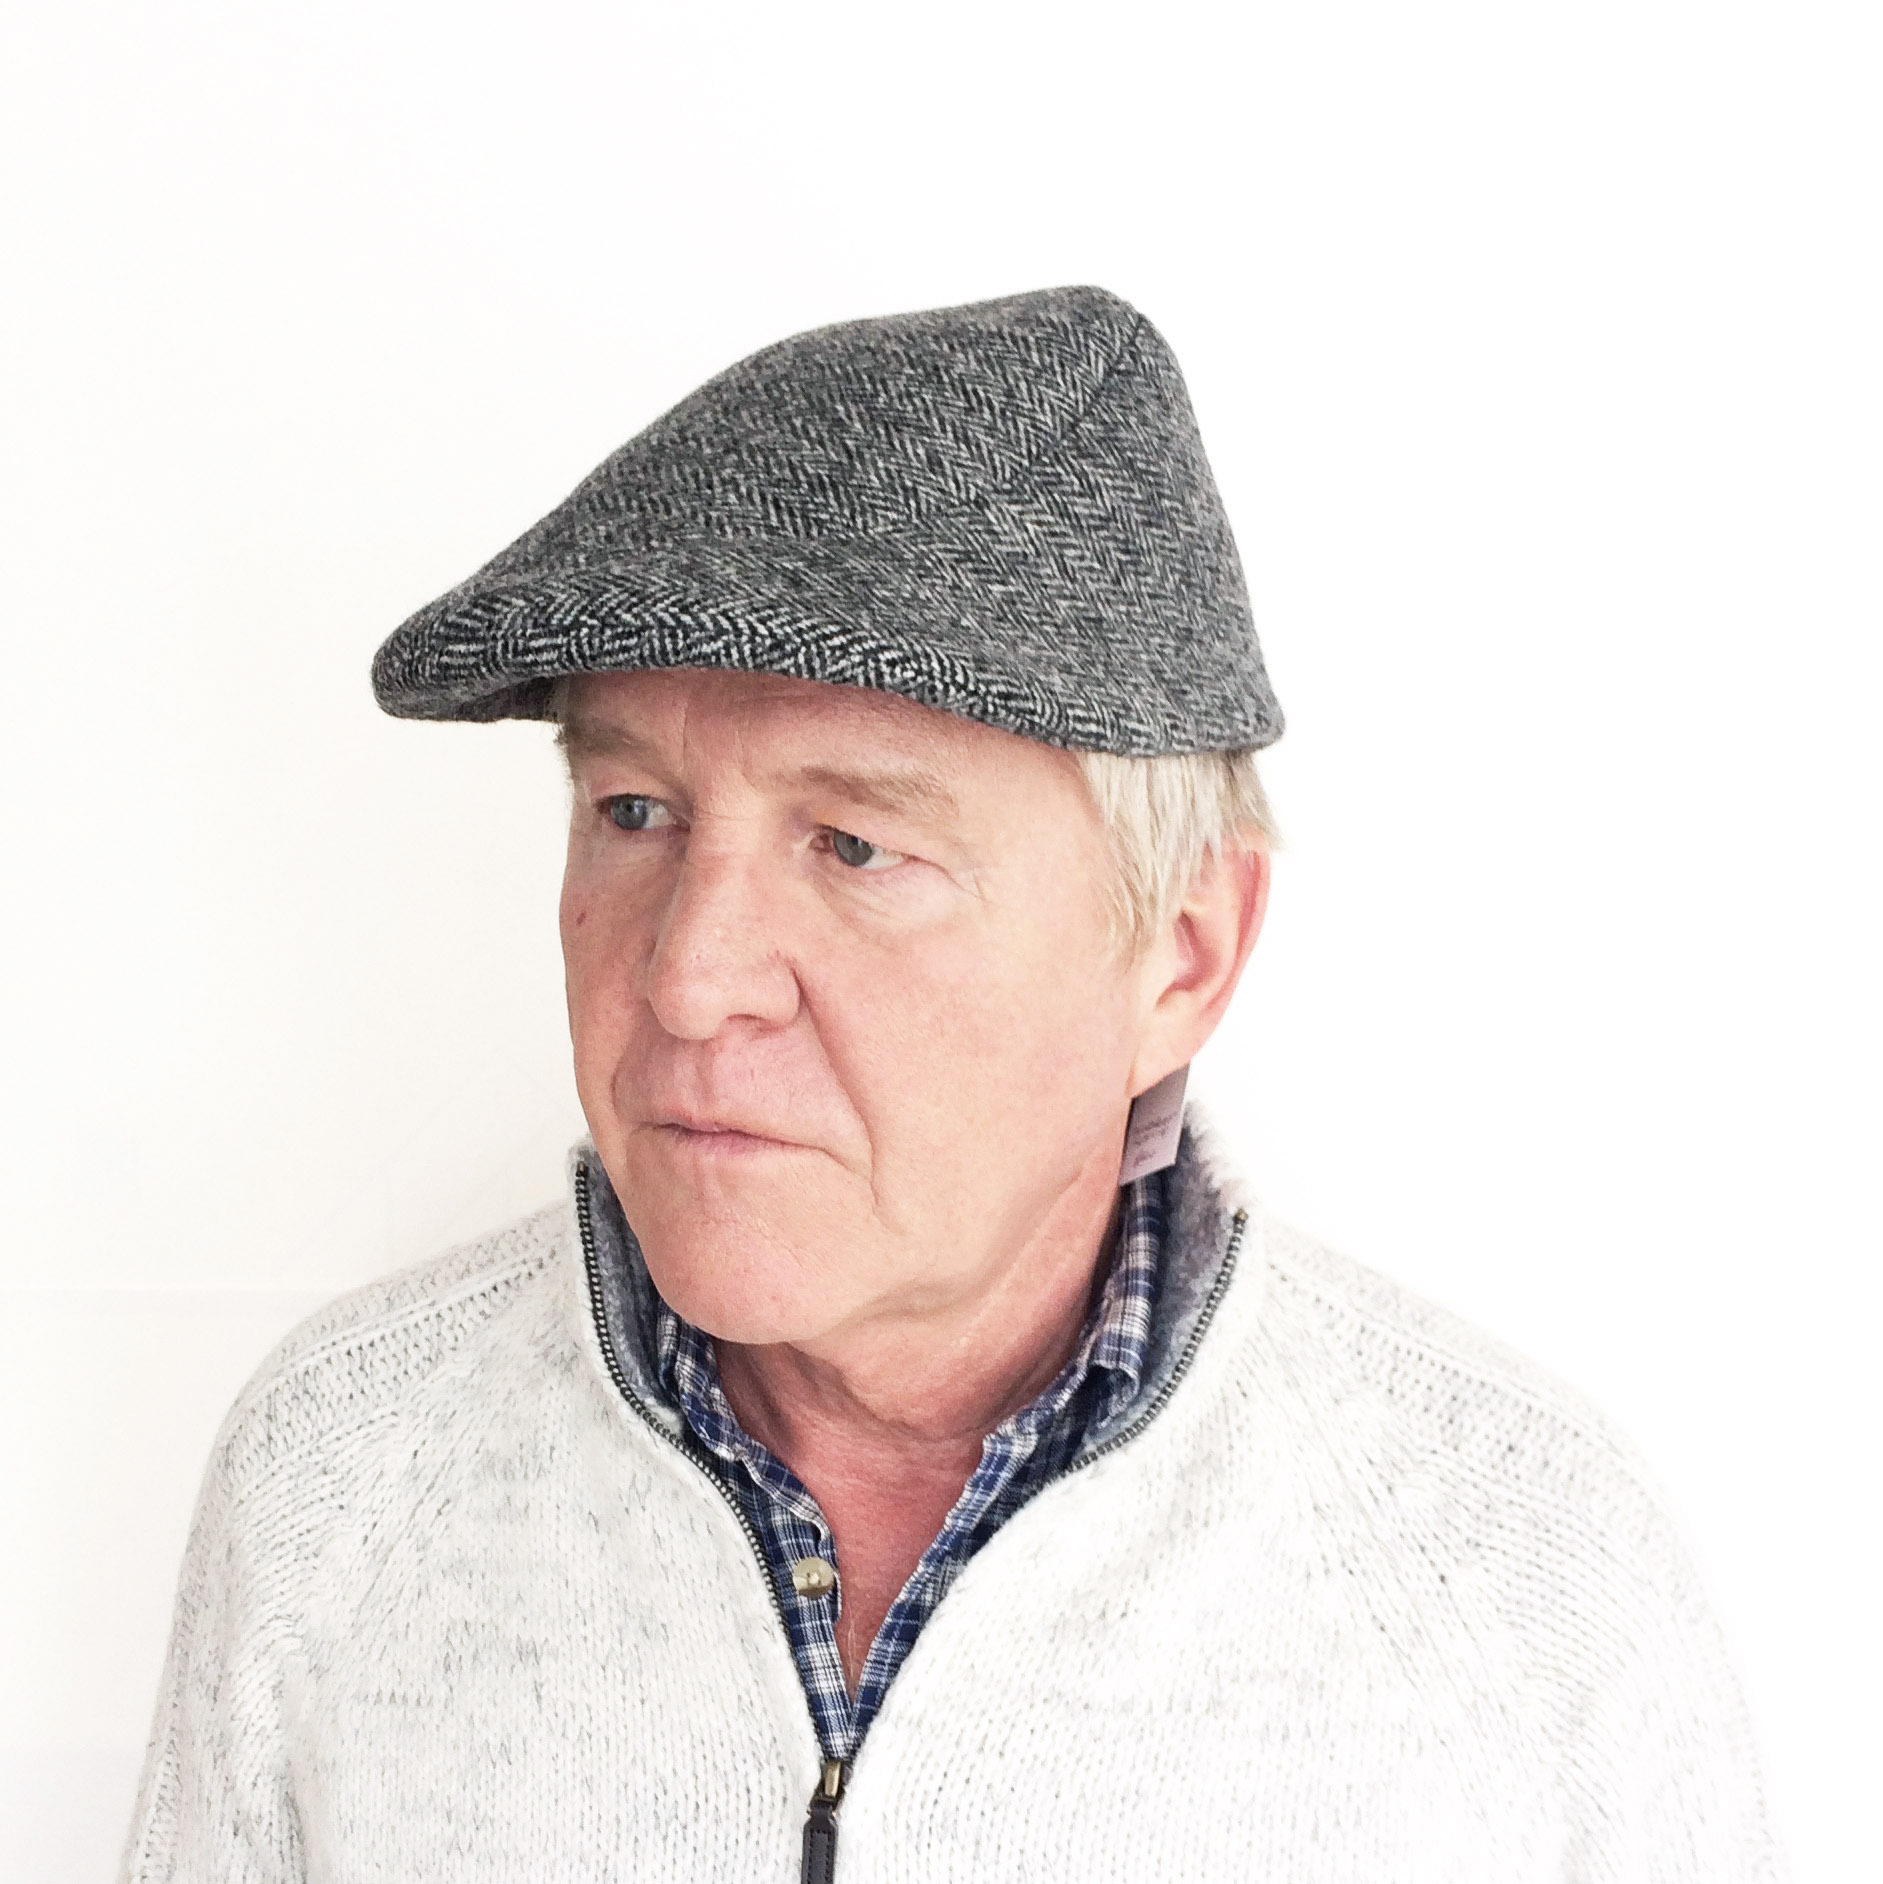 Eric wears 'Windswept Flat Cap' in grey herringbone tweed   buy online